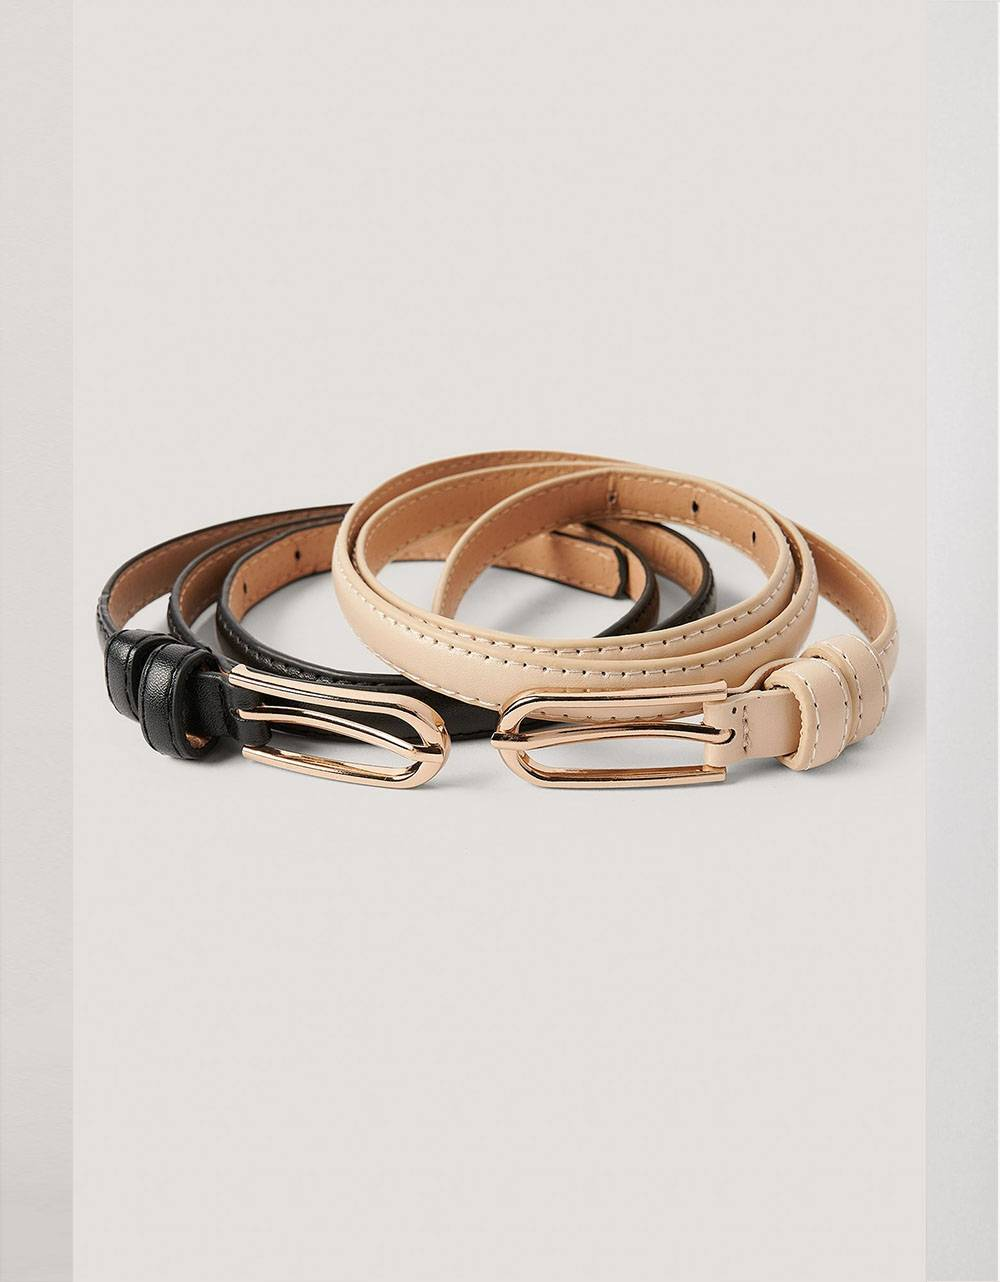 NA-KD double pack oval buckle belt - black/beige NA-KD ACCESSORIES 22,13 €